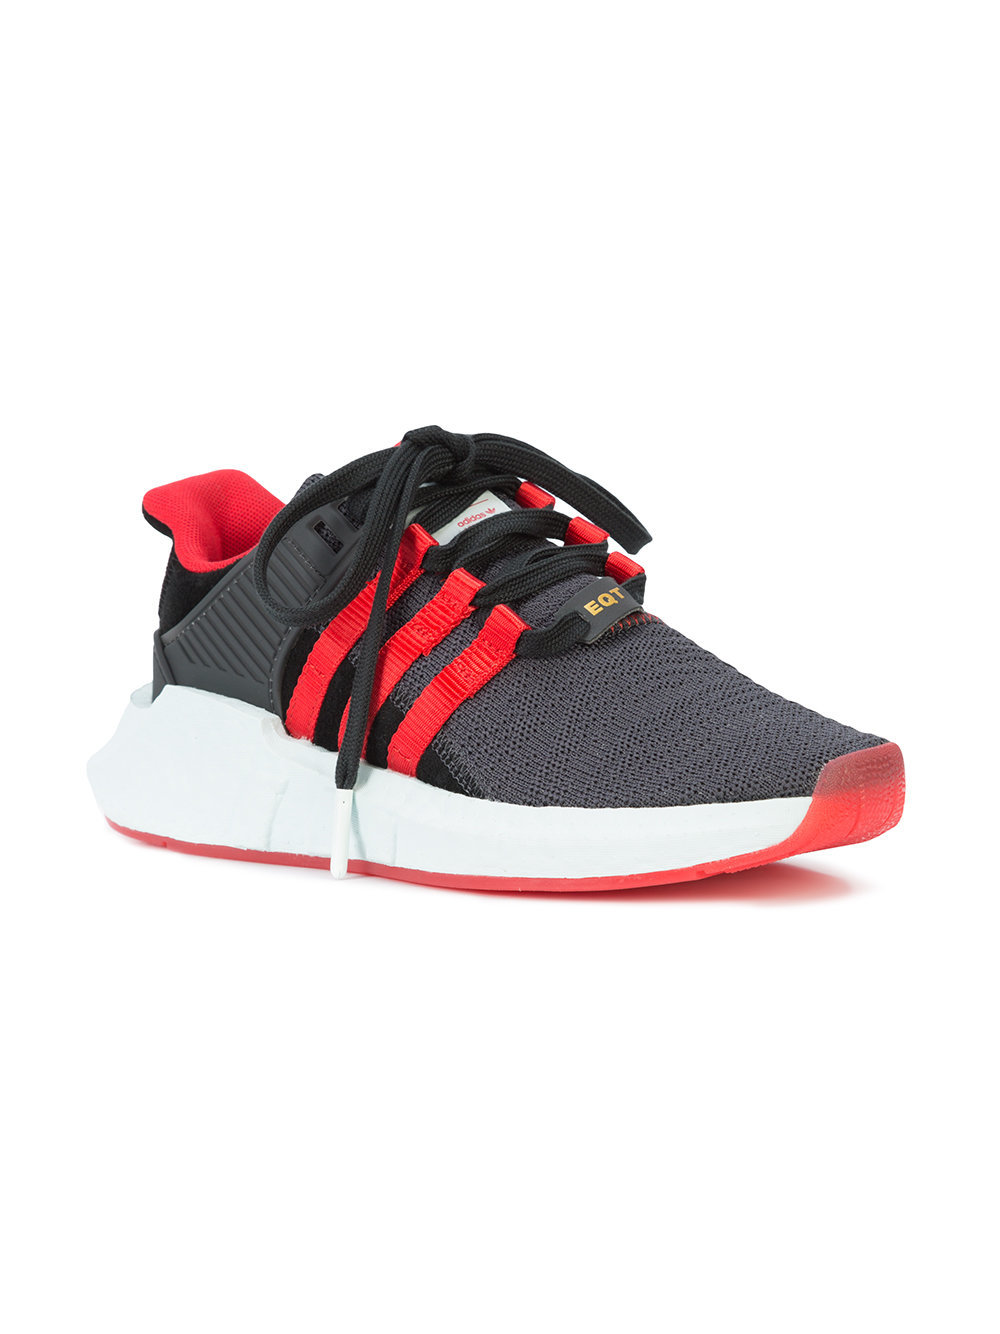 5e21f50e5924 ... Red and Black Athletic Shoes adidas Eqt Support 9317 Yuanxiao Sneakers  ...